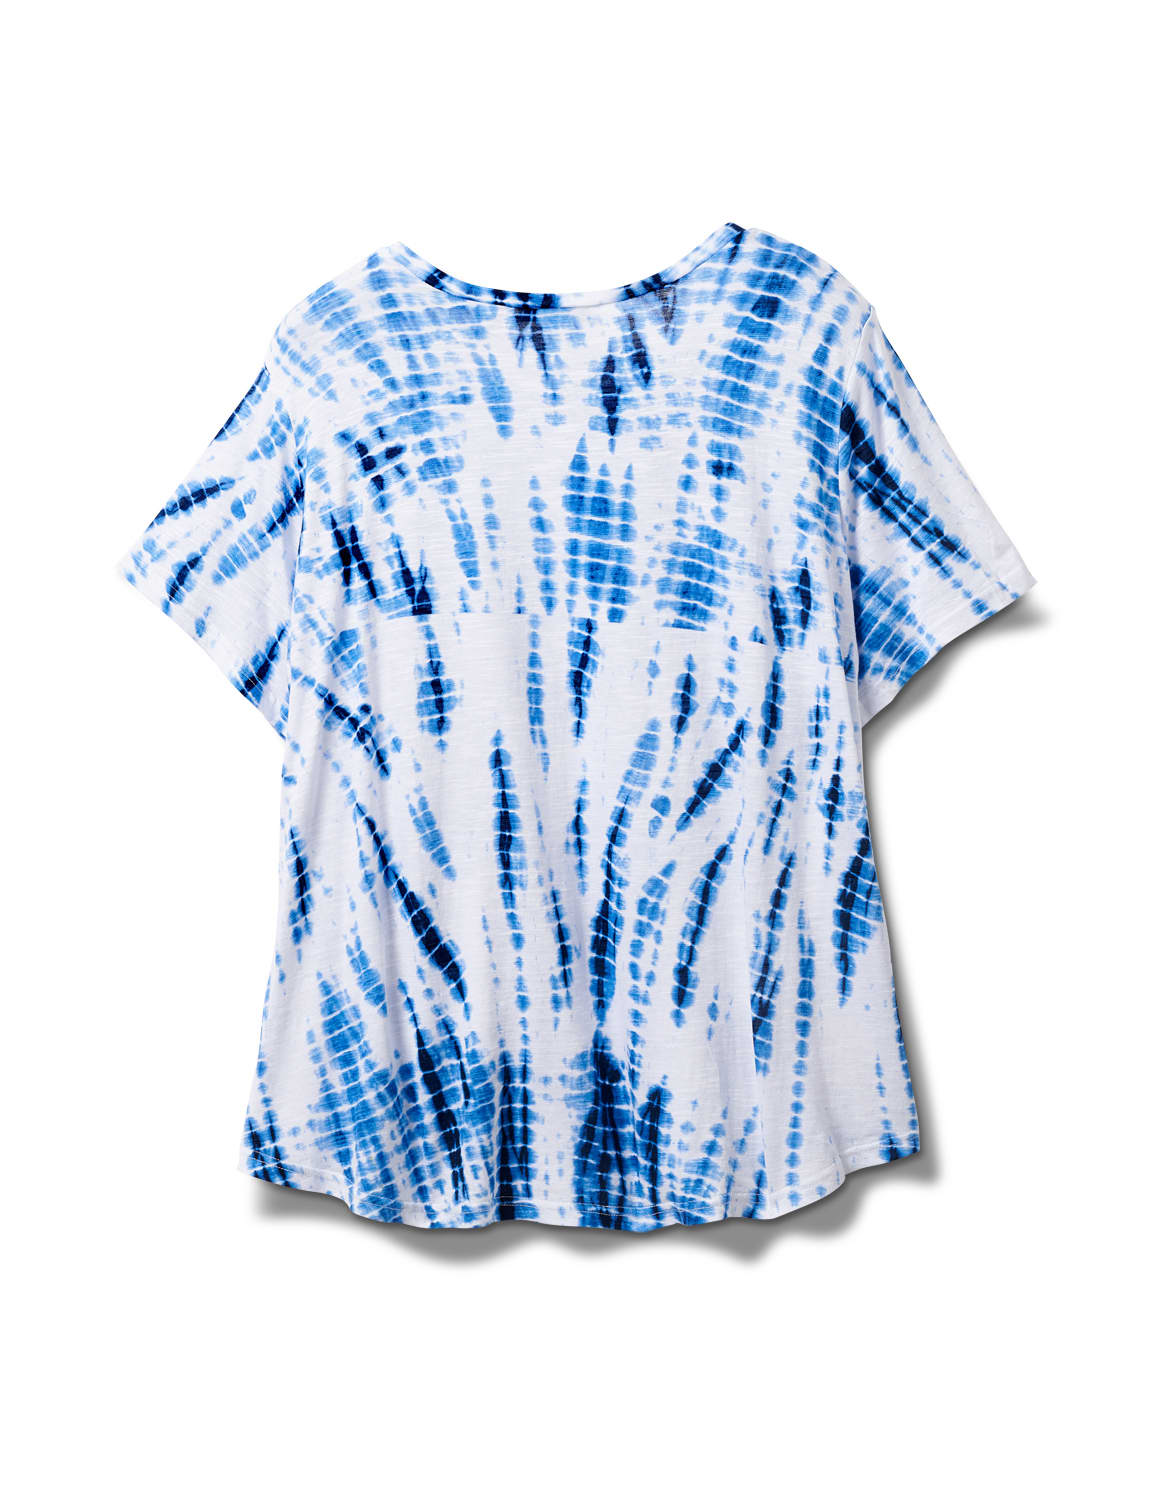 Embellished Tie Dye Knit Top - Blue/White - Back